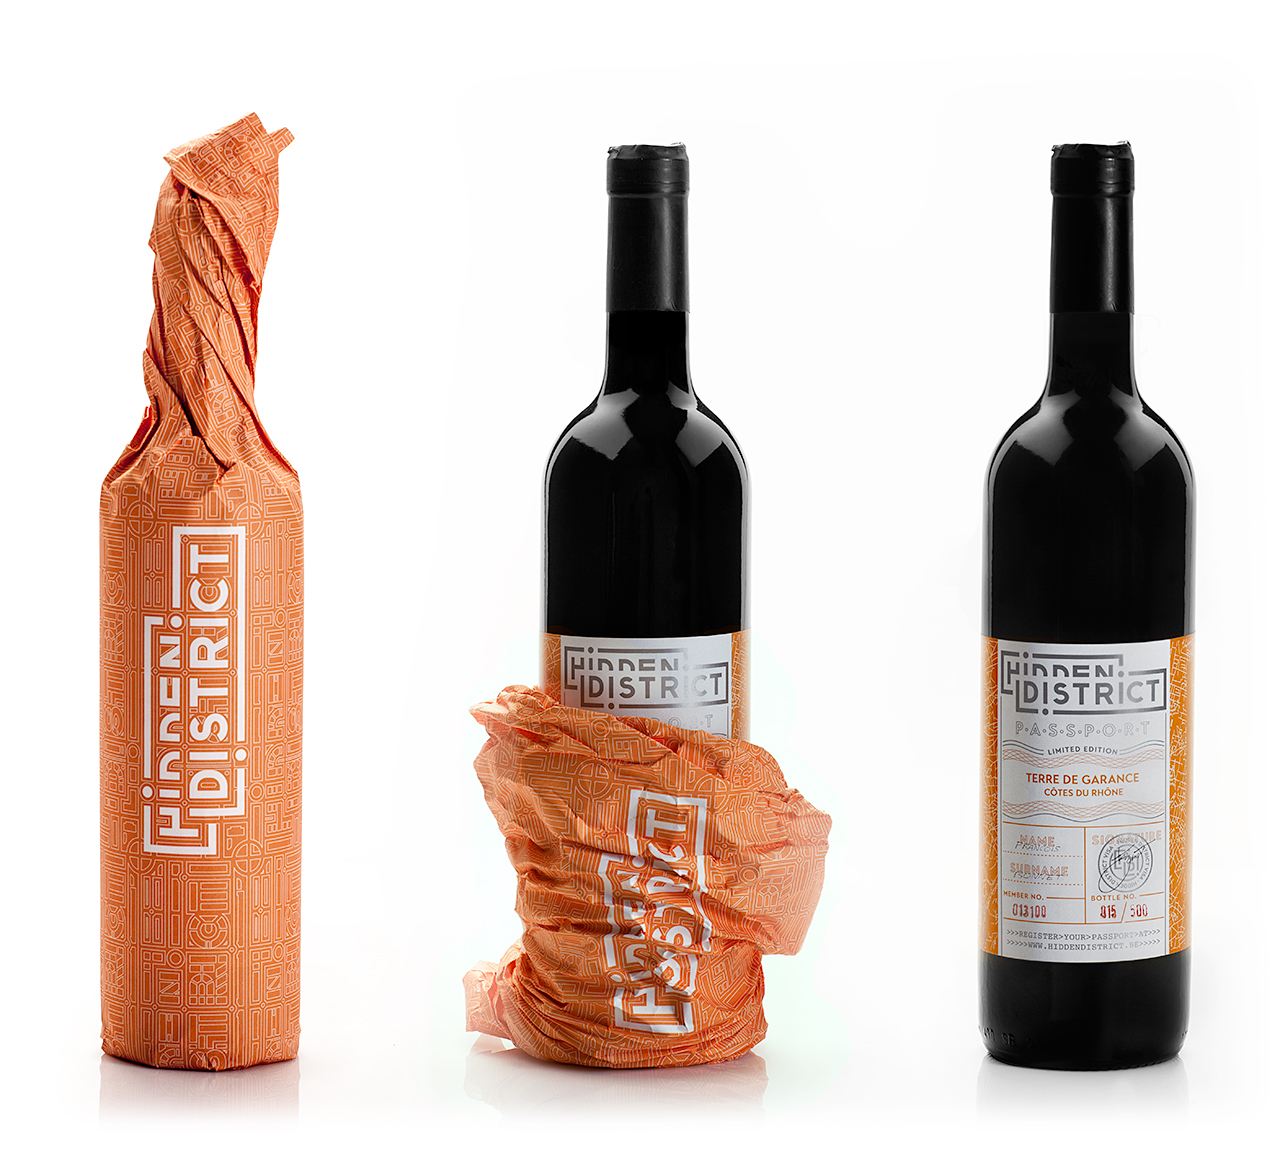 Hidden District, branding, packaging, vino, papelería